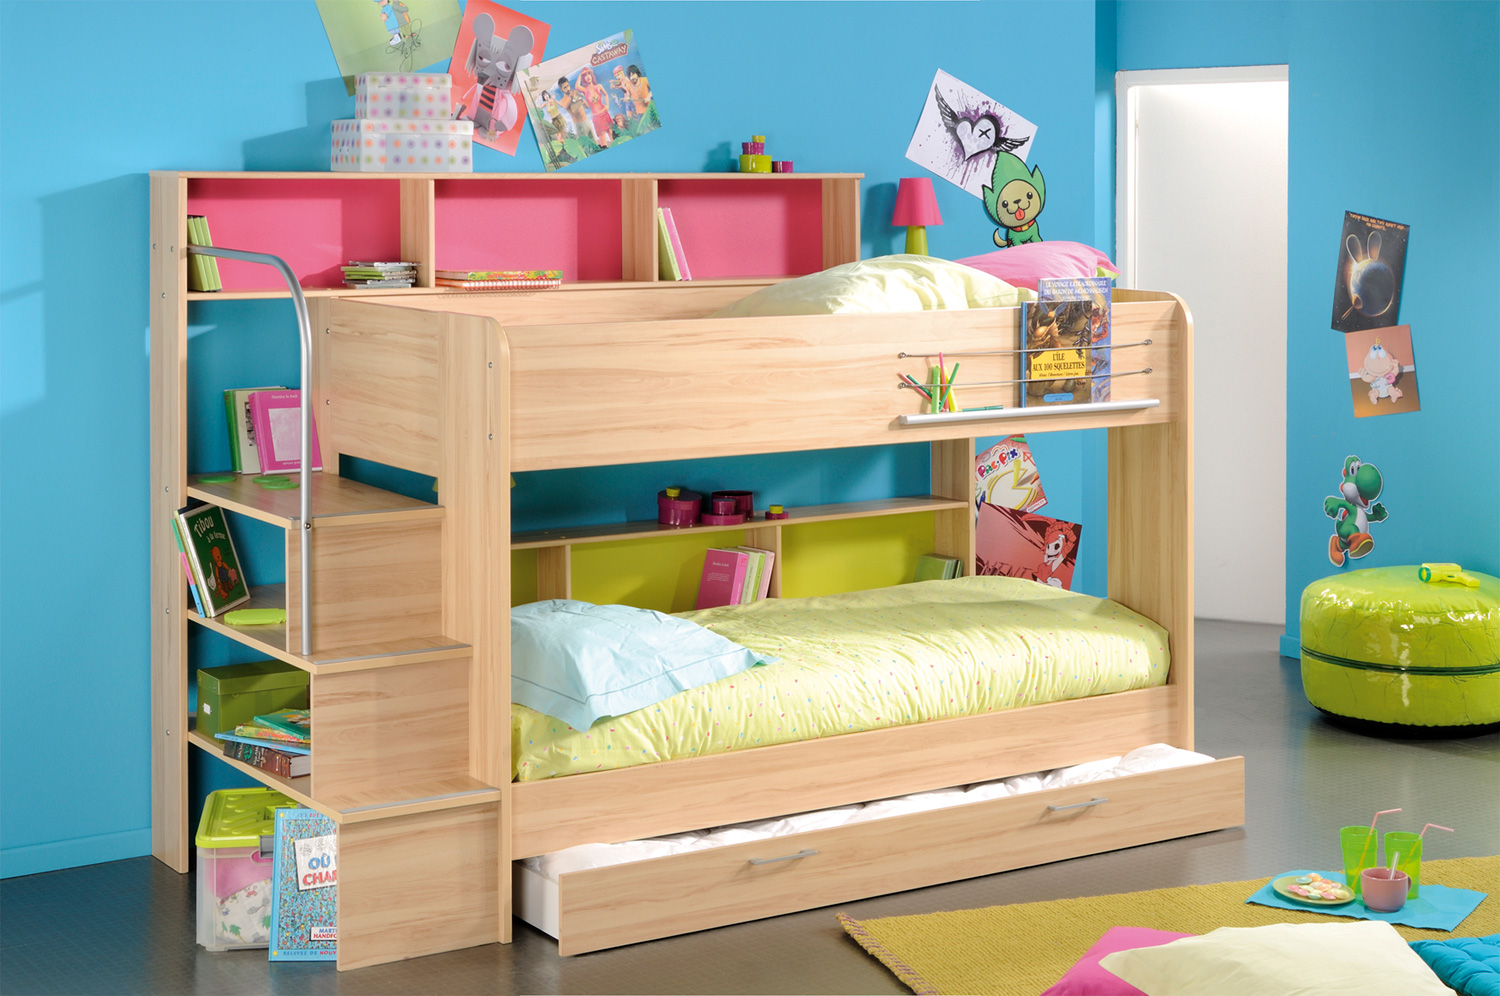 Space saving stylish bunk beds for your home for Creative beds for small spaces